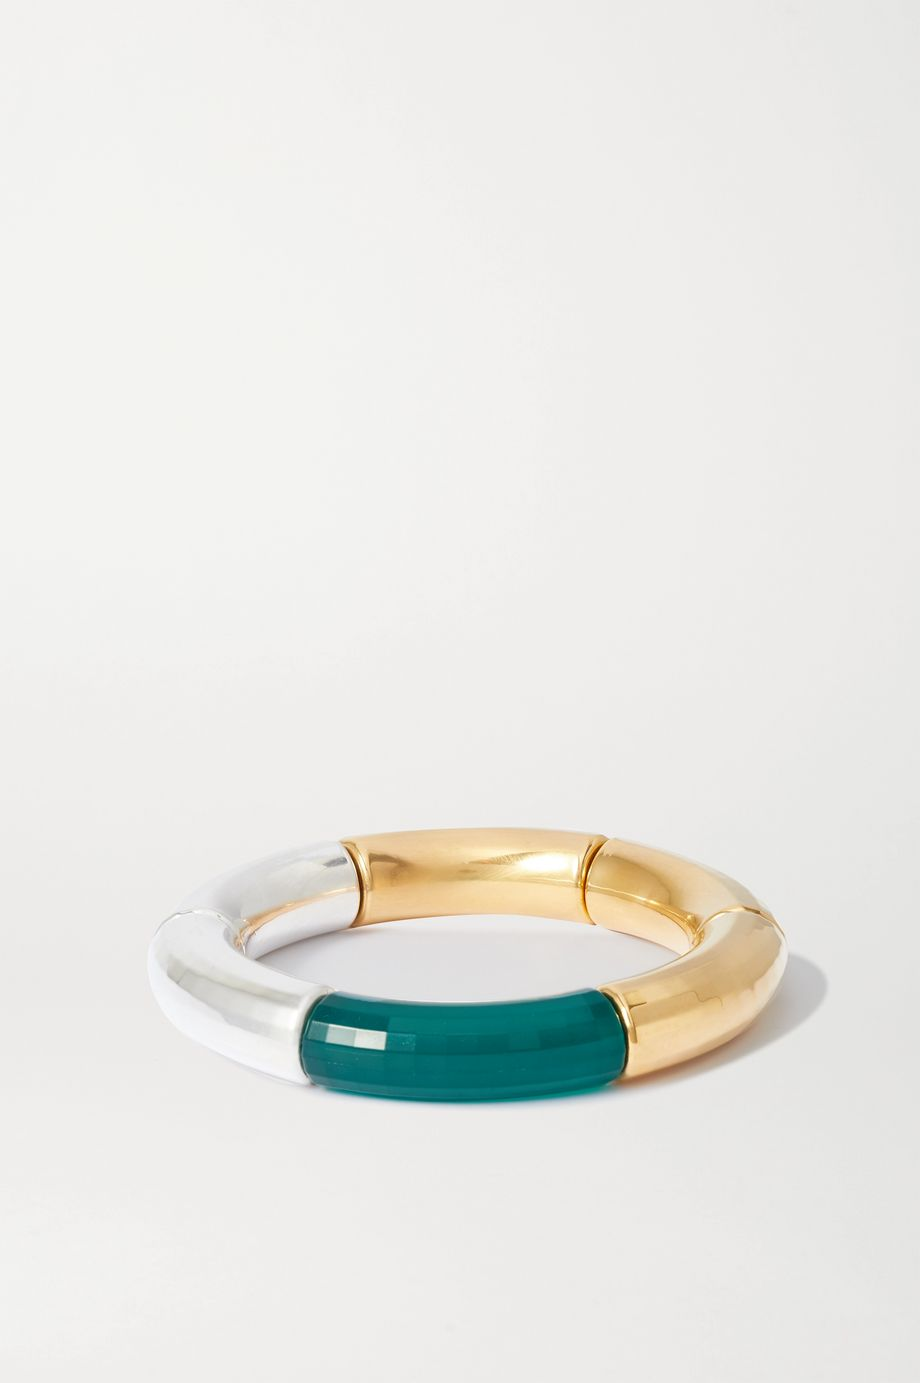 Kyoto Tango Sunichka resin, gold and silver-plated bangle